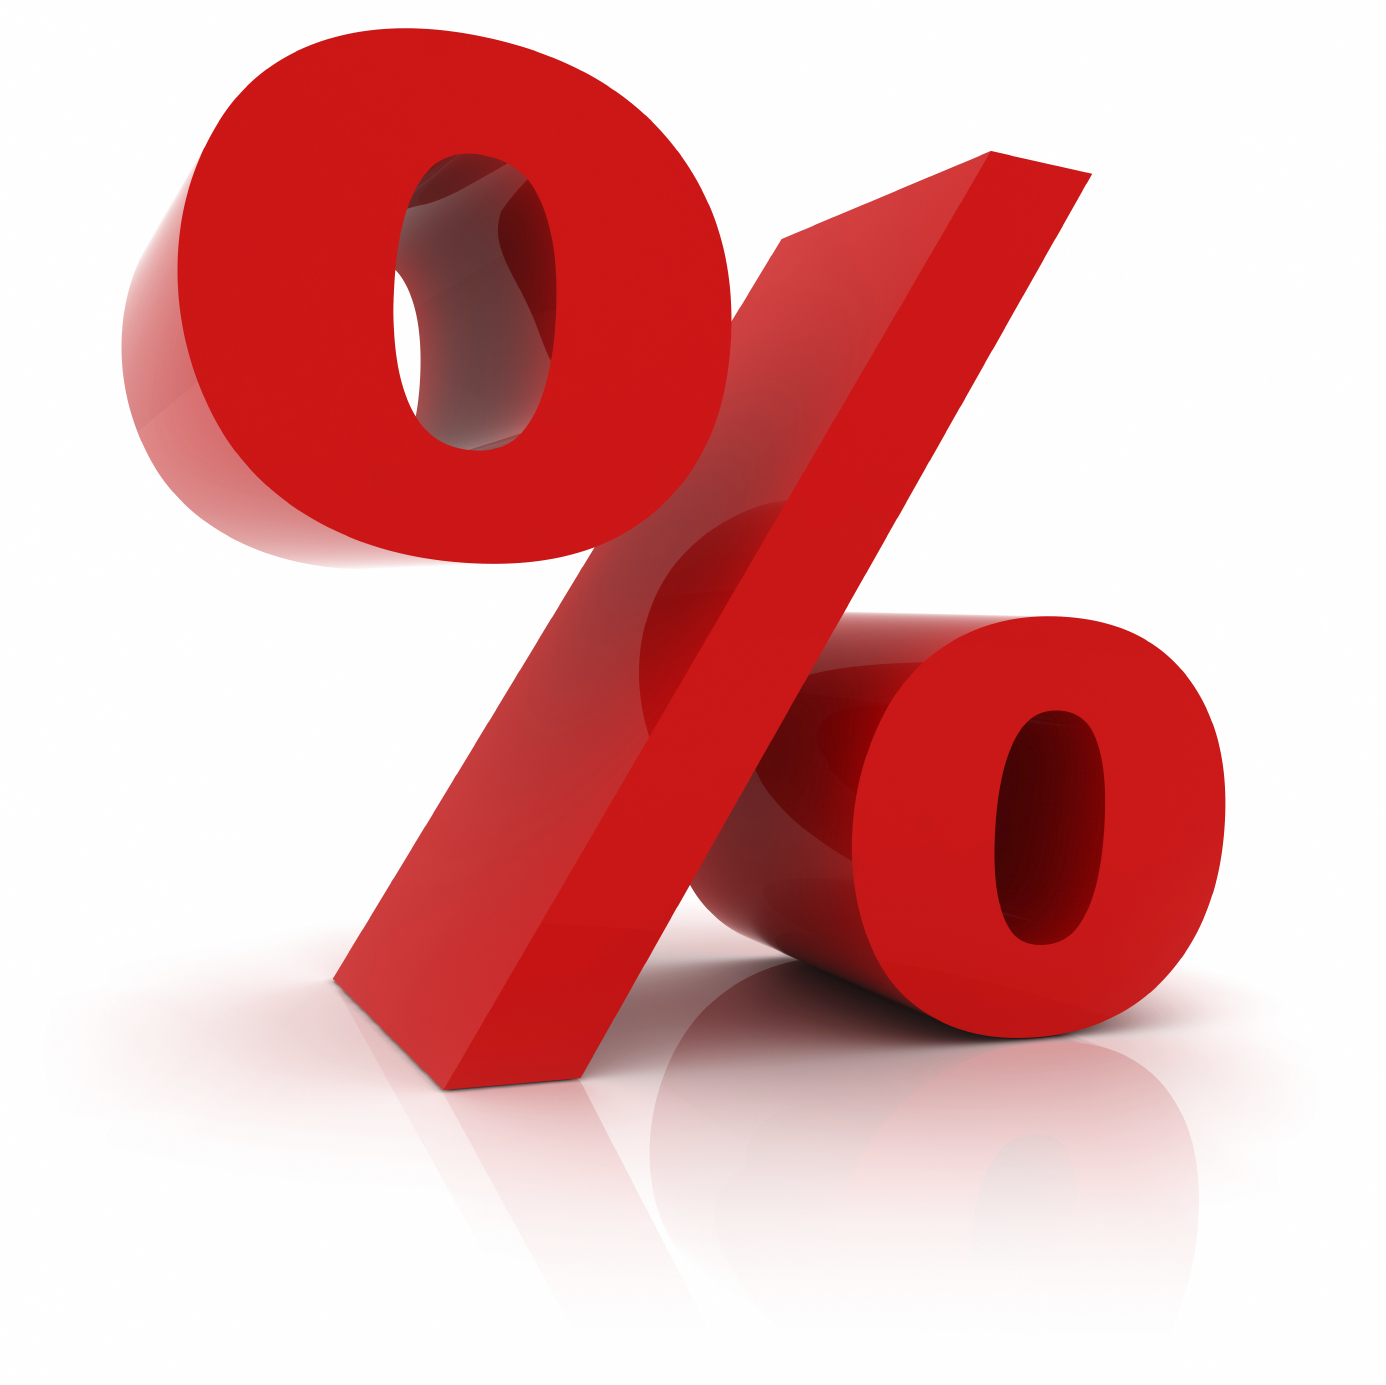 Rate increases by 25 basis points